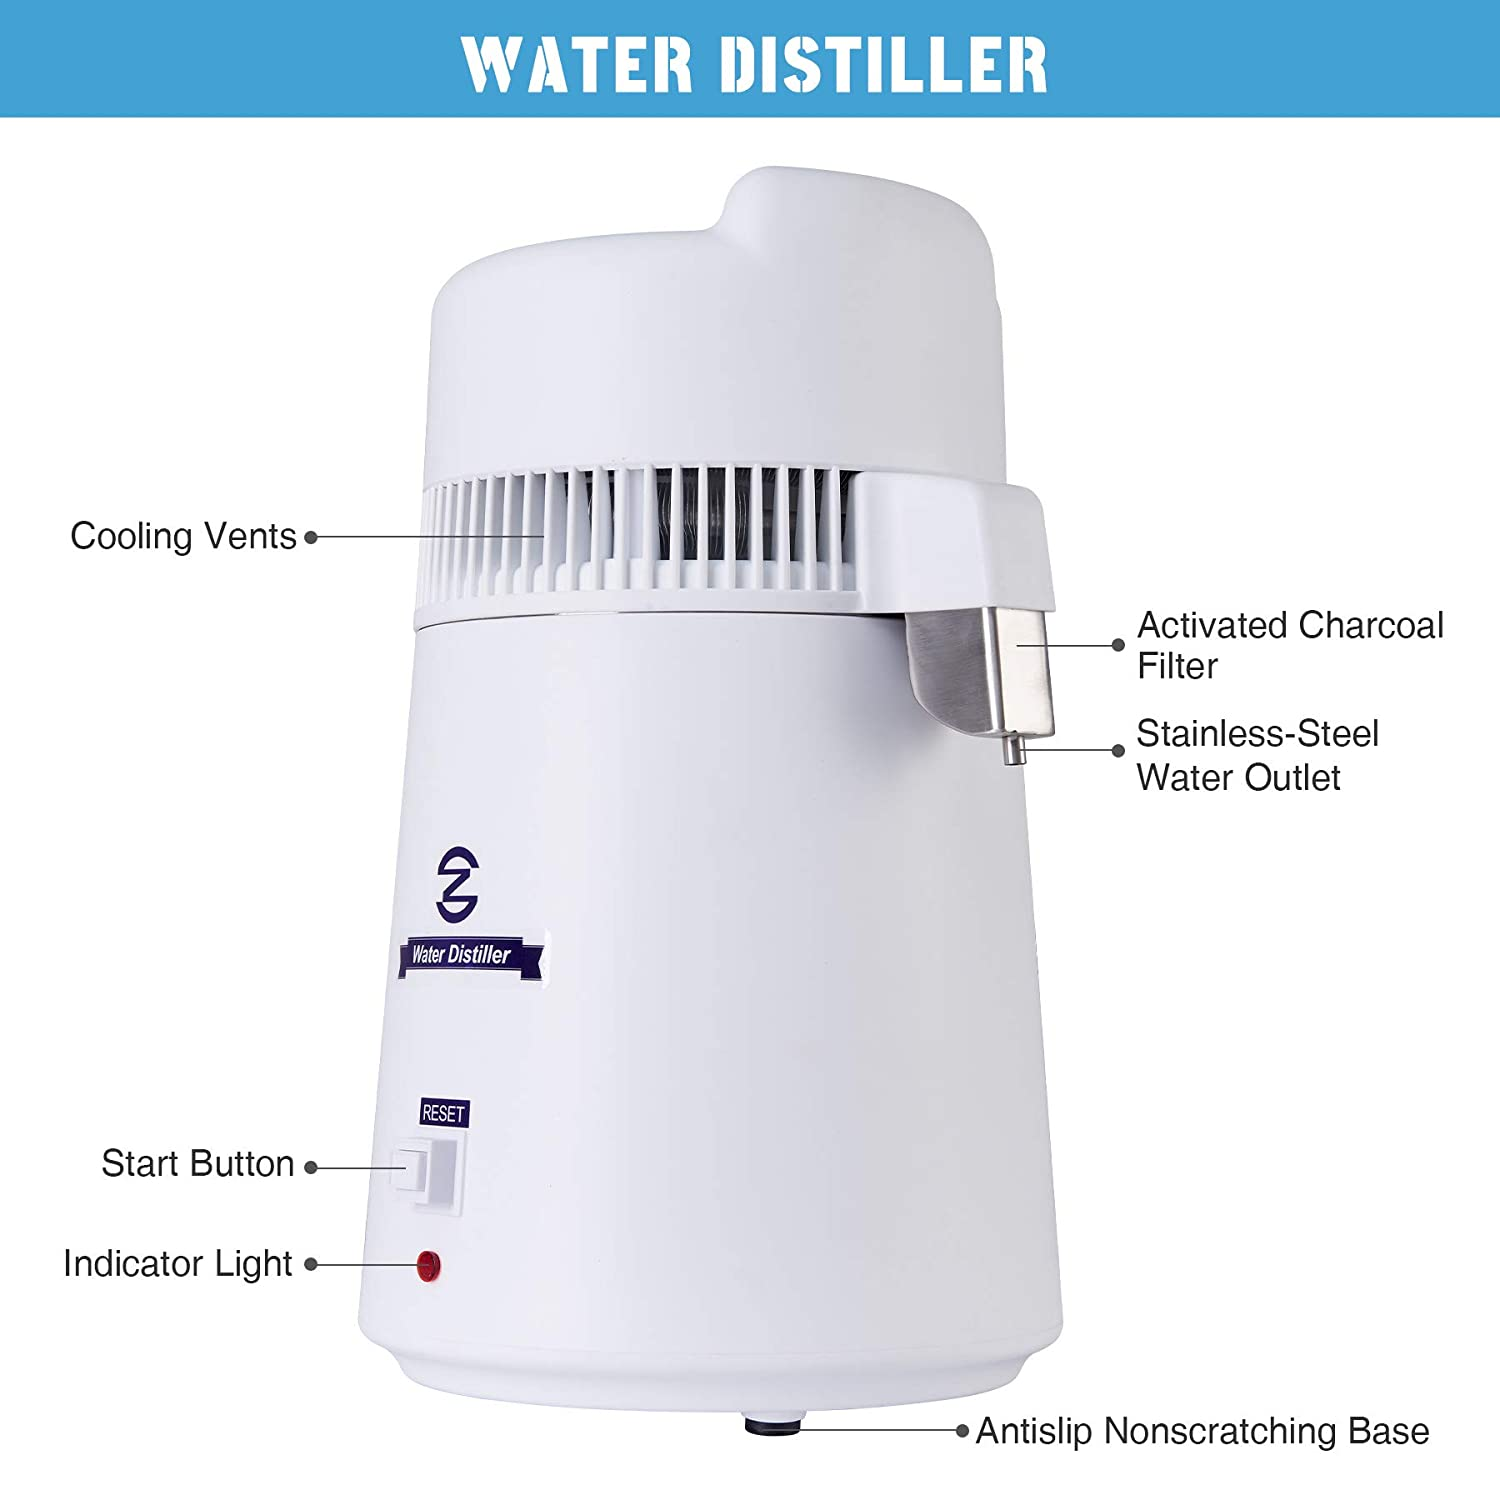 White Countertop Distiller for Kitchen or Lab Electric Water Purifier for Home Water Distilling 6 Litre Distilled Water Machine with 6 Litre Jug CO-Z 900W Pure Water Distiller